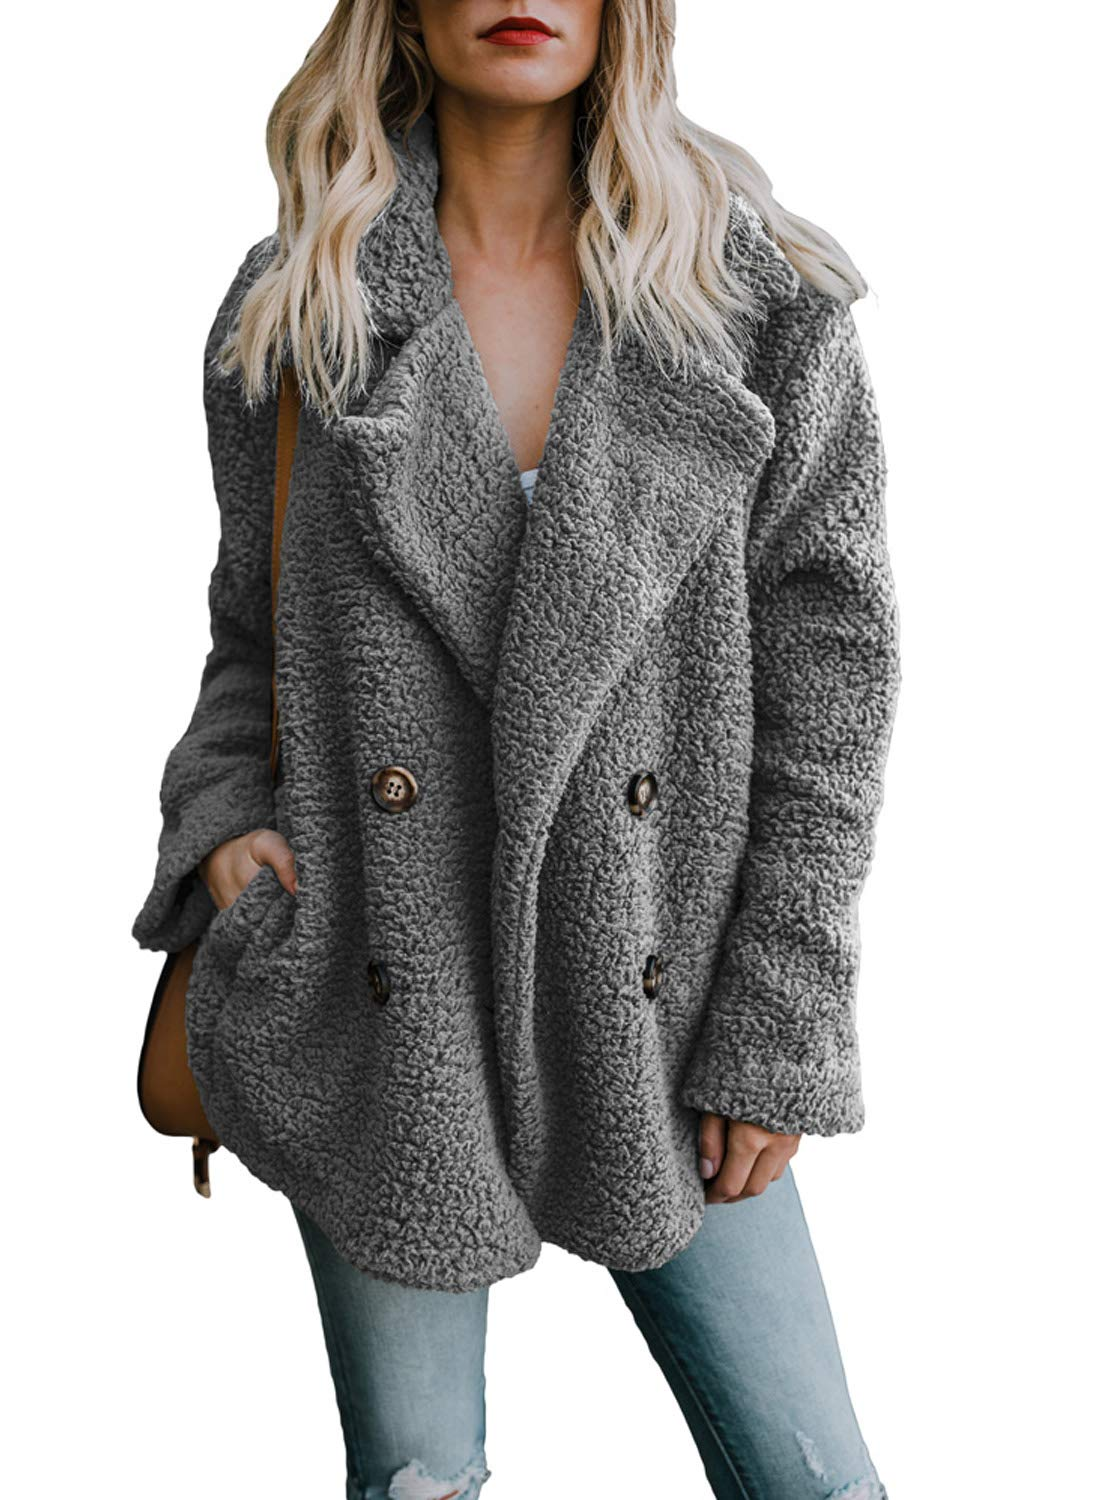 Dokotoo Womens Fashion Jackets Winter Cozy Warm Fashion Casual Oversized Long Sleeve Open Front Fuzzy Coat with Pockets Sweater Cardigans Fluffy Outerwears Grey Medium by Dokotoo